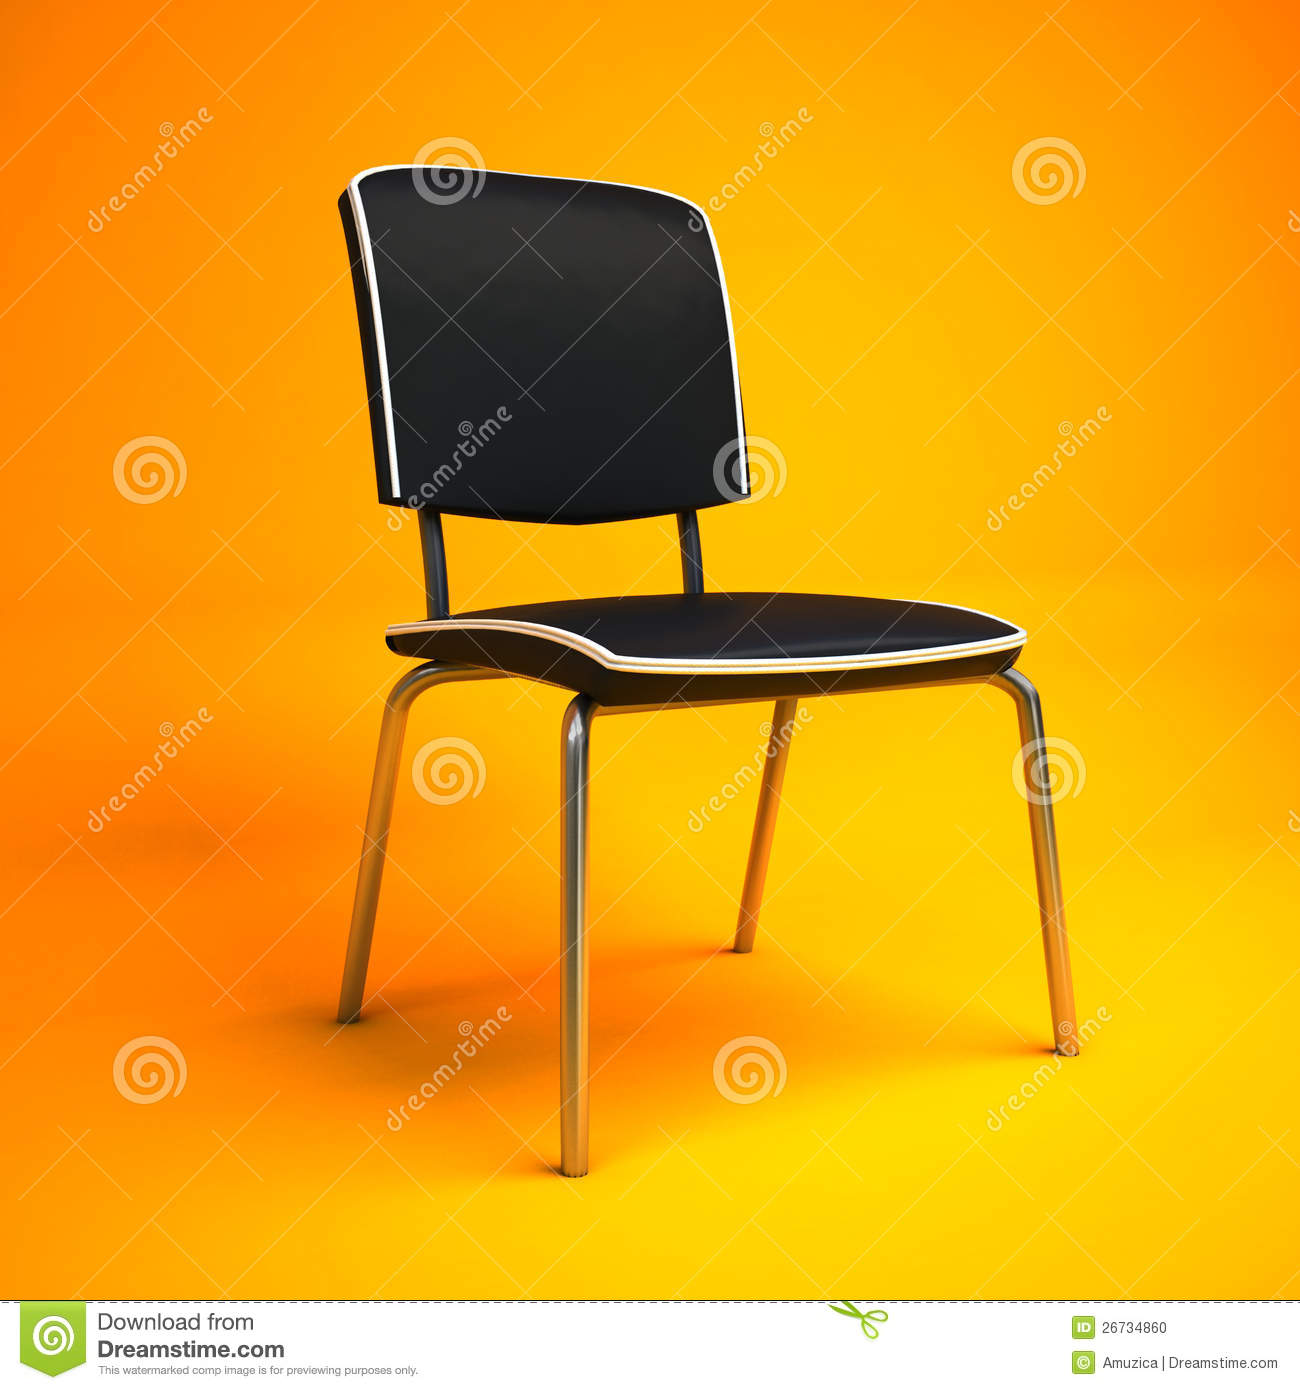 yellow office chair antique white stock image cartoondealer 19776277